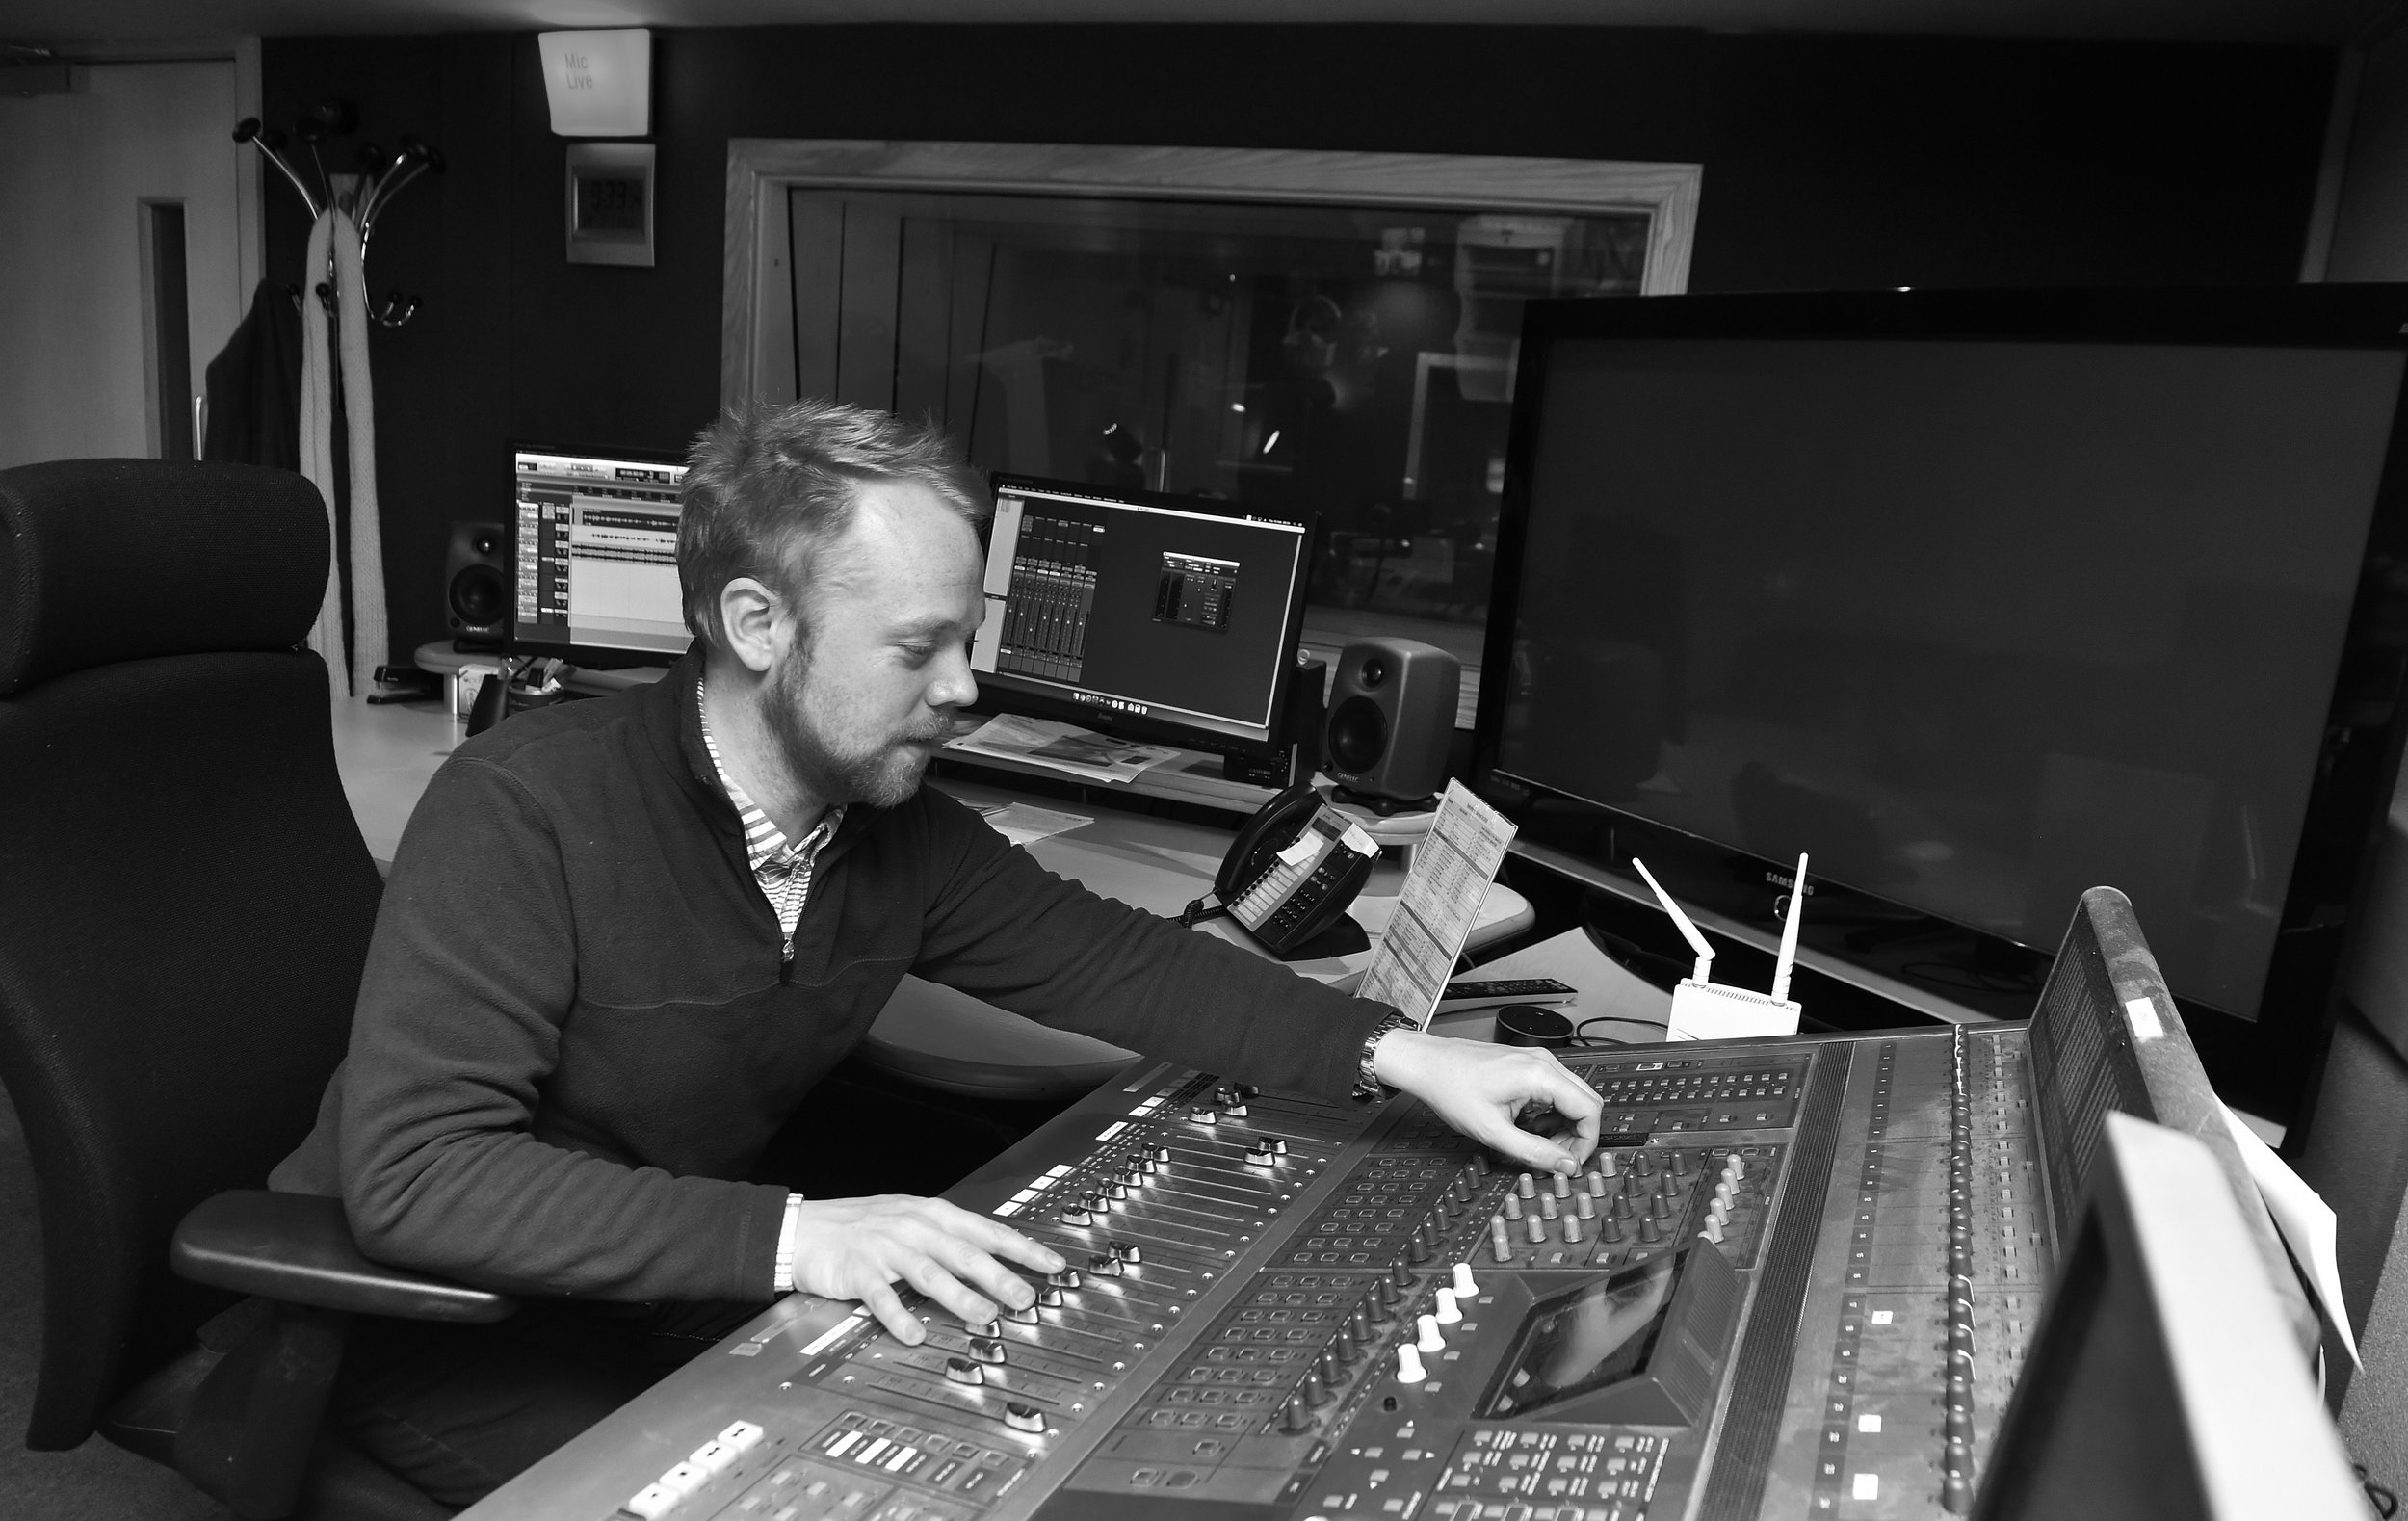 Studio One - Rec with engineer: £130 p/hSelf op: £110 p/hEditing and post production: £200 p/h